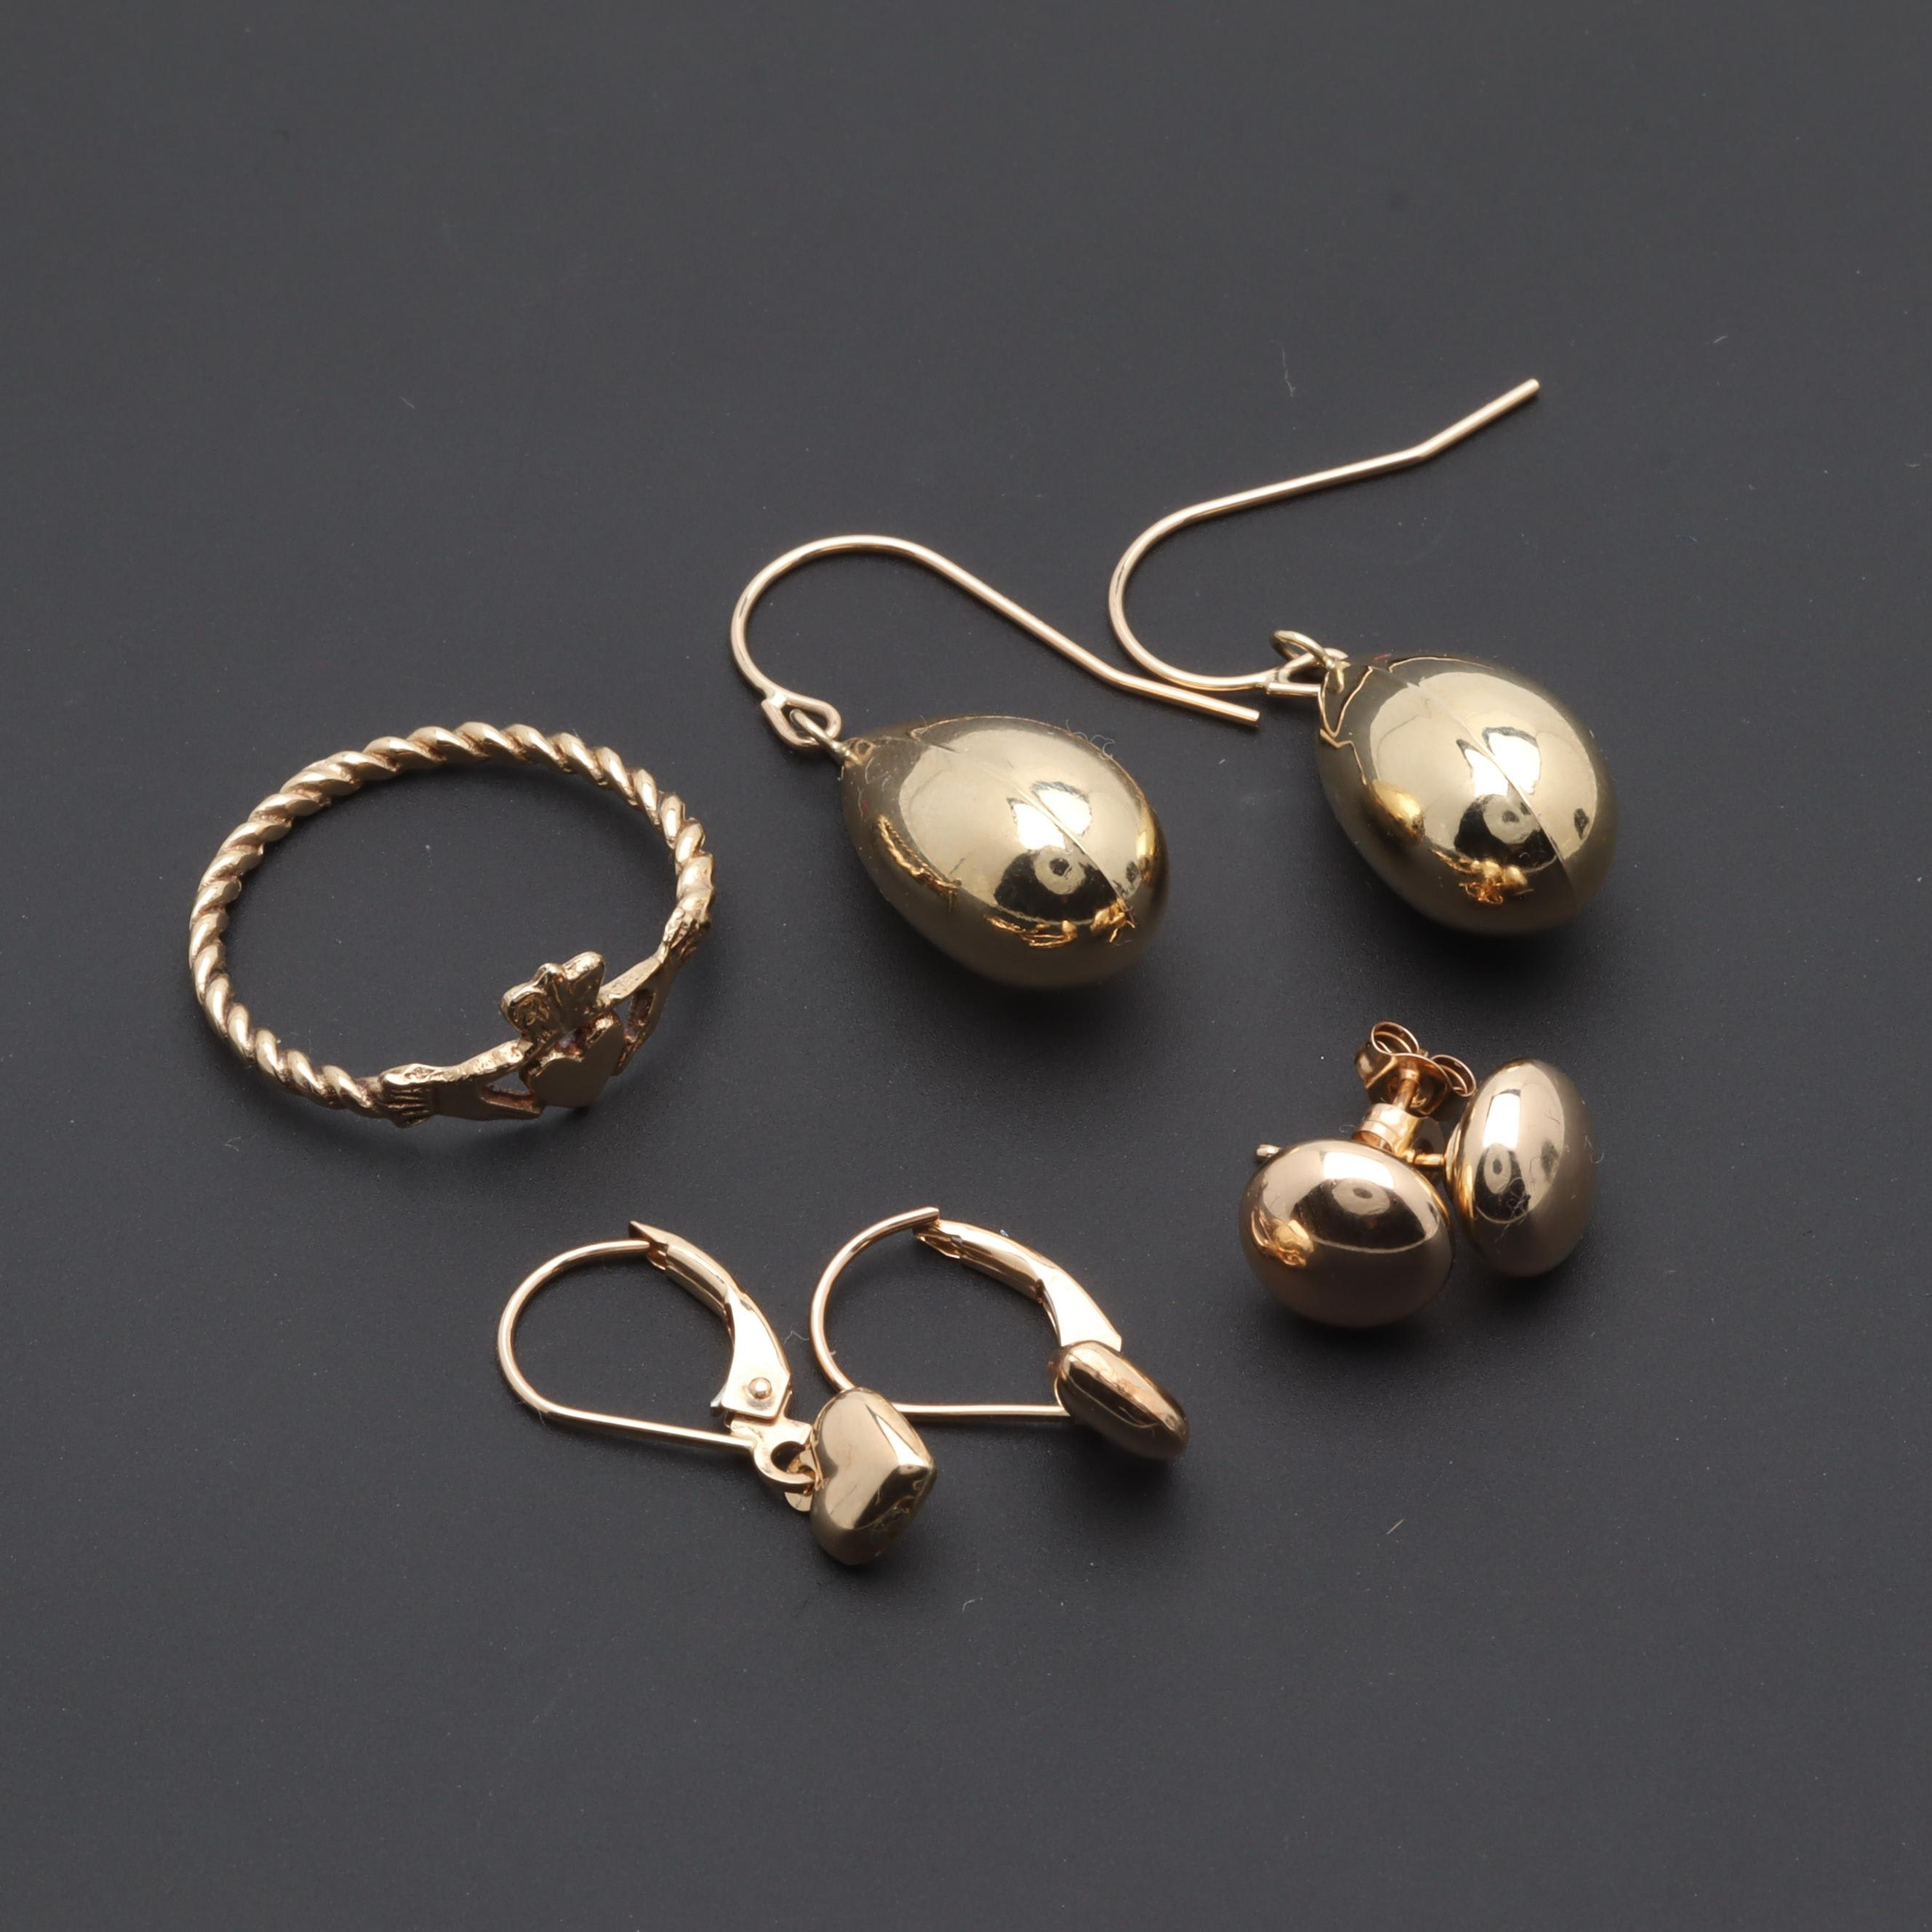 9K and 10K Yellow Gold Ring and Earrings